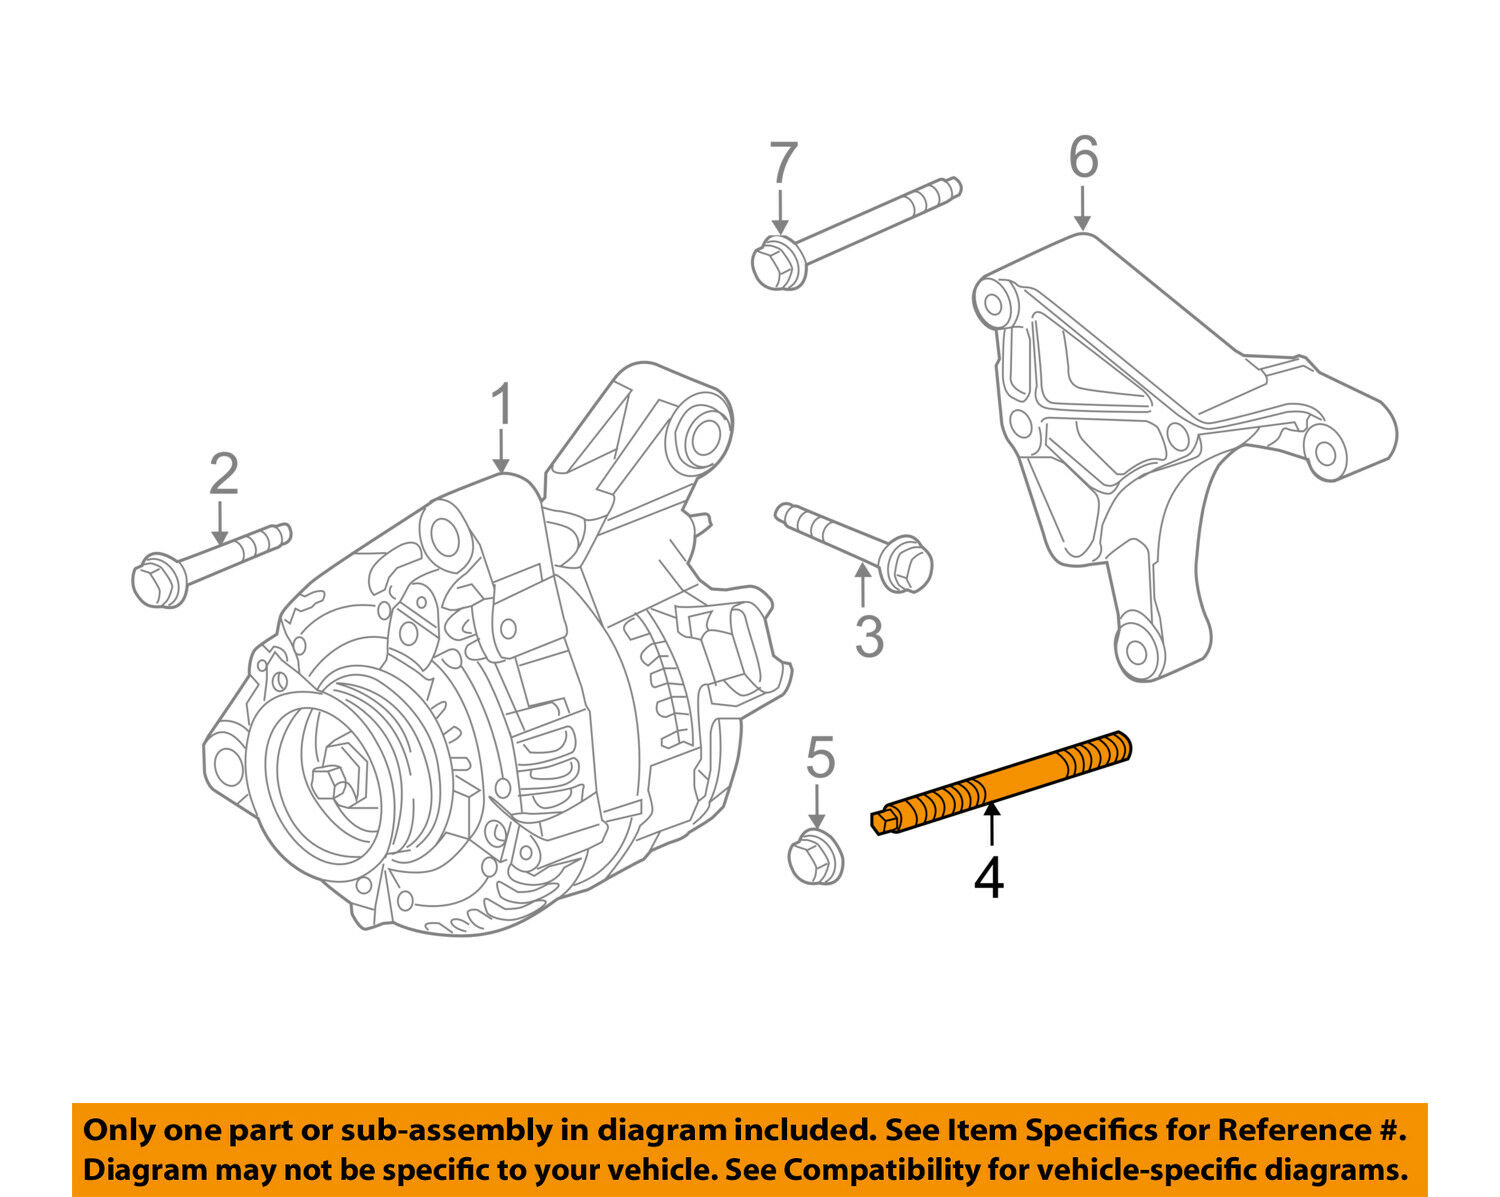 Gm Oem Alternator Mount Bracket Stud 12555610 885 Picclick Delco Wiring Diagram Chrysler 300 1 Of 2 See More